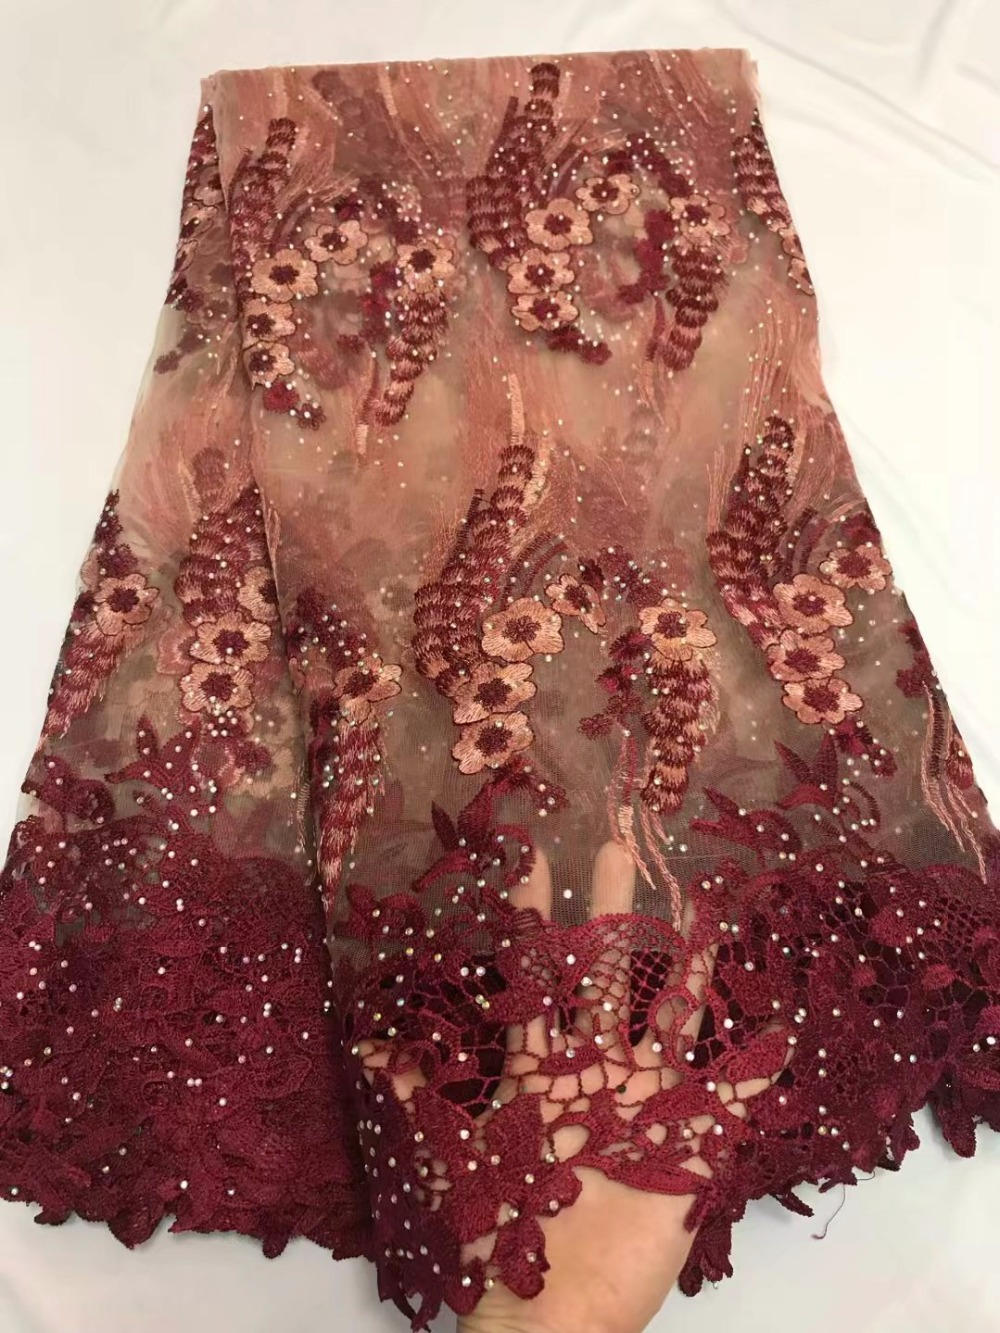 african fabric 2018 wine tulle lace fabric with stones tissus guipure tulle  perle dentelle high quality 5yard lotZQF-81 6786c8c37523